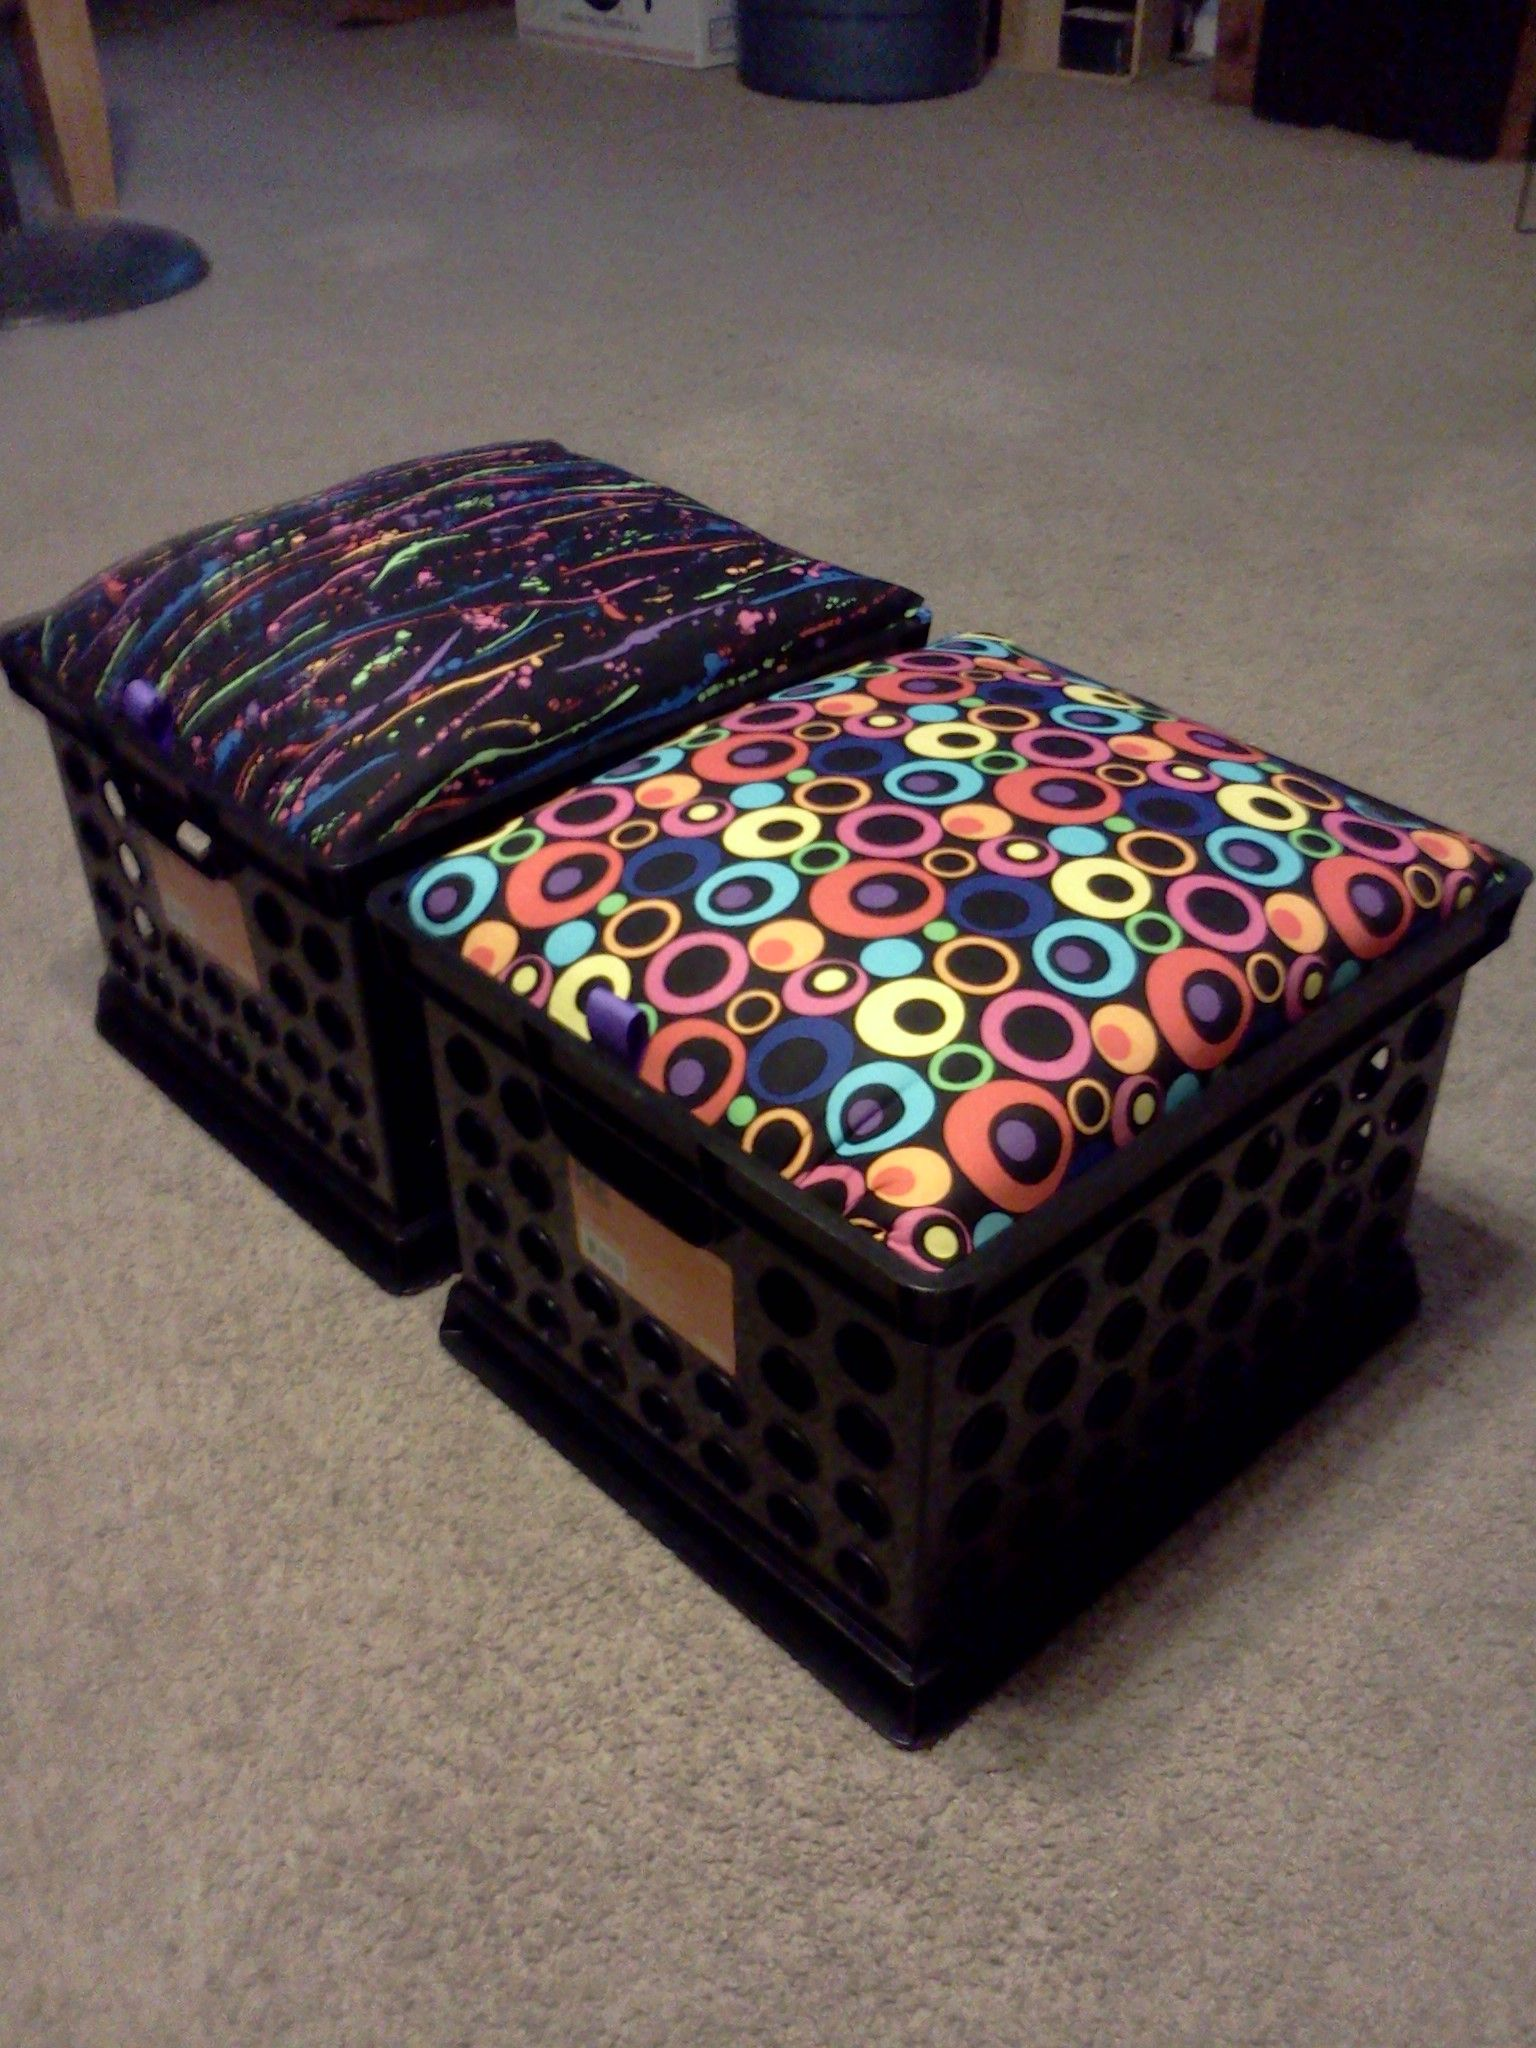 Crate Chairs - Dual purpose chair & storage | Chair